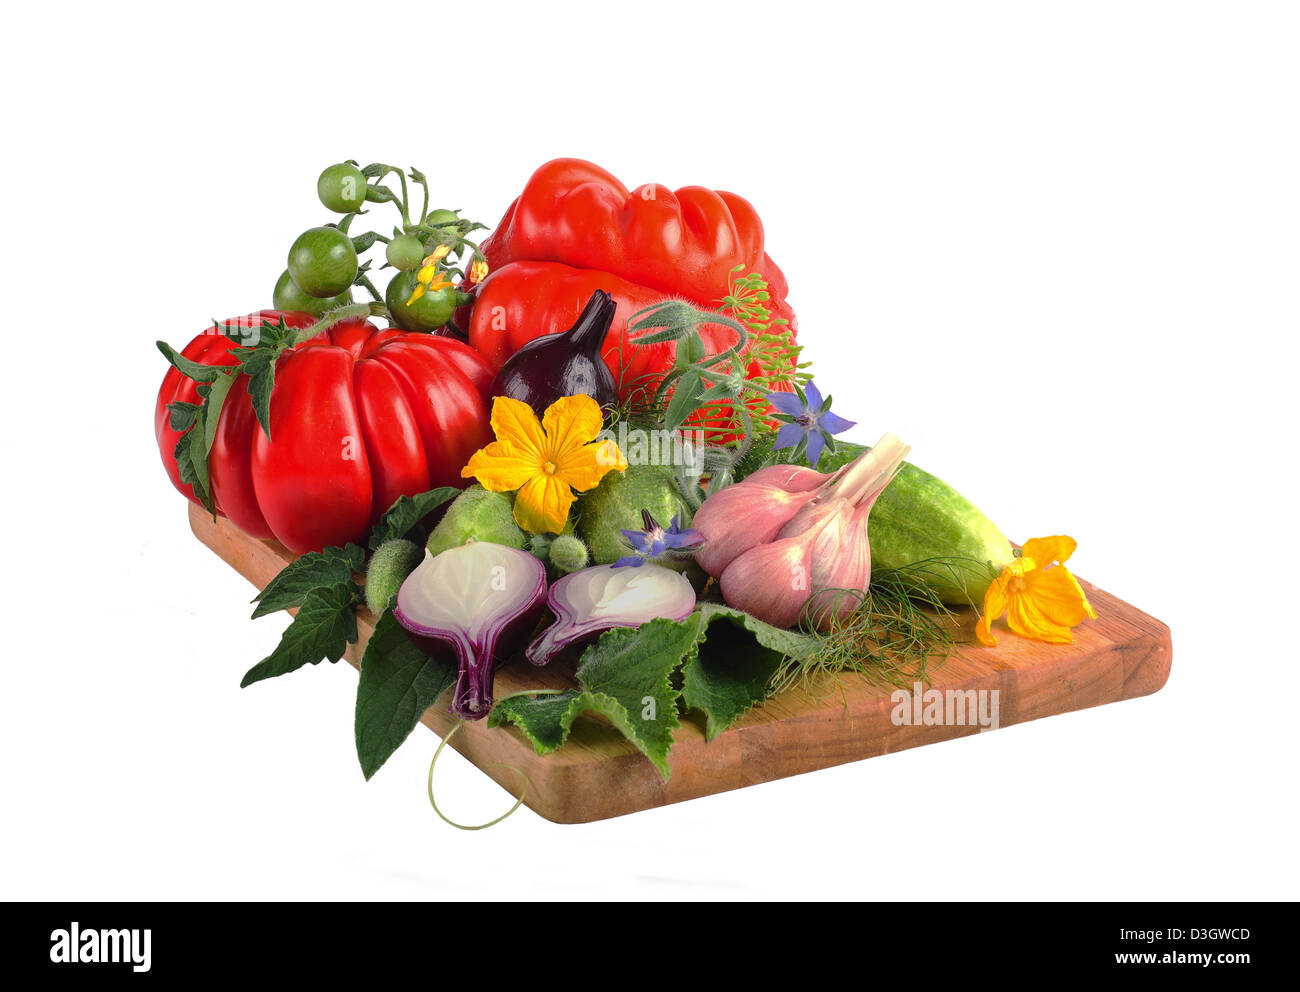 Tomato Flowers Cut Out Stock Images Pictures Alamy Prune Tomatoes Diagram Of Plant Cucumbers And Onions On A Wooden Board Image